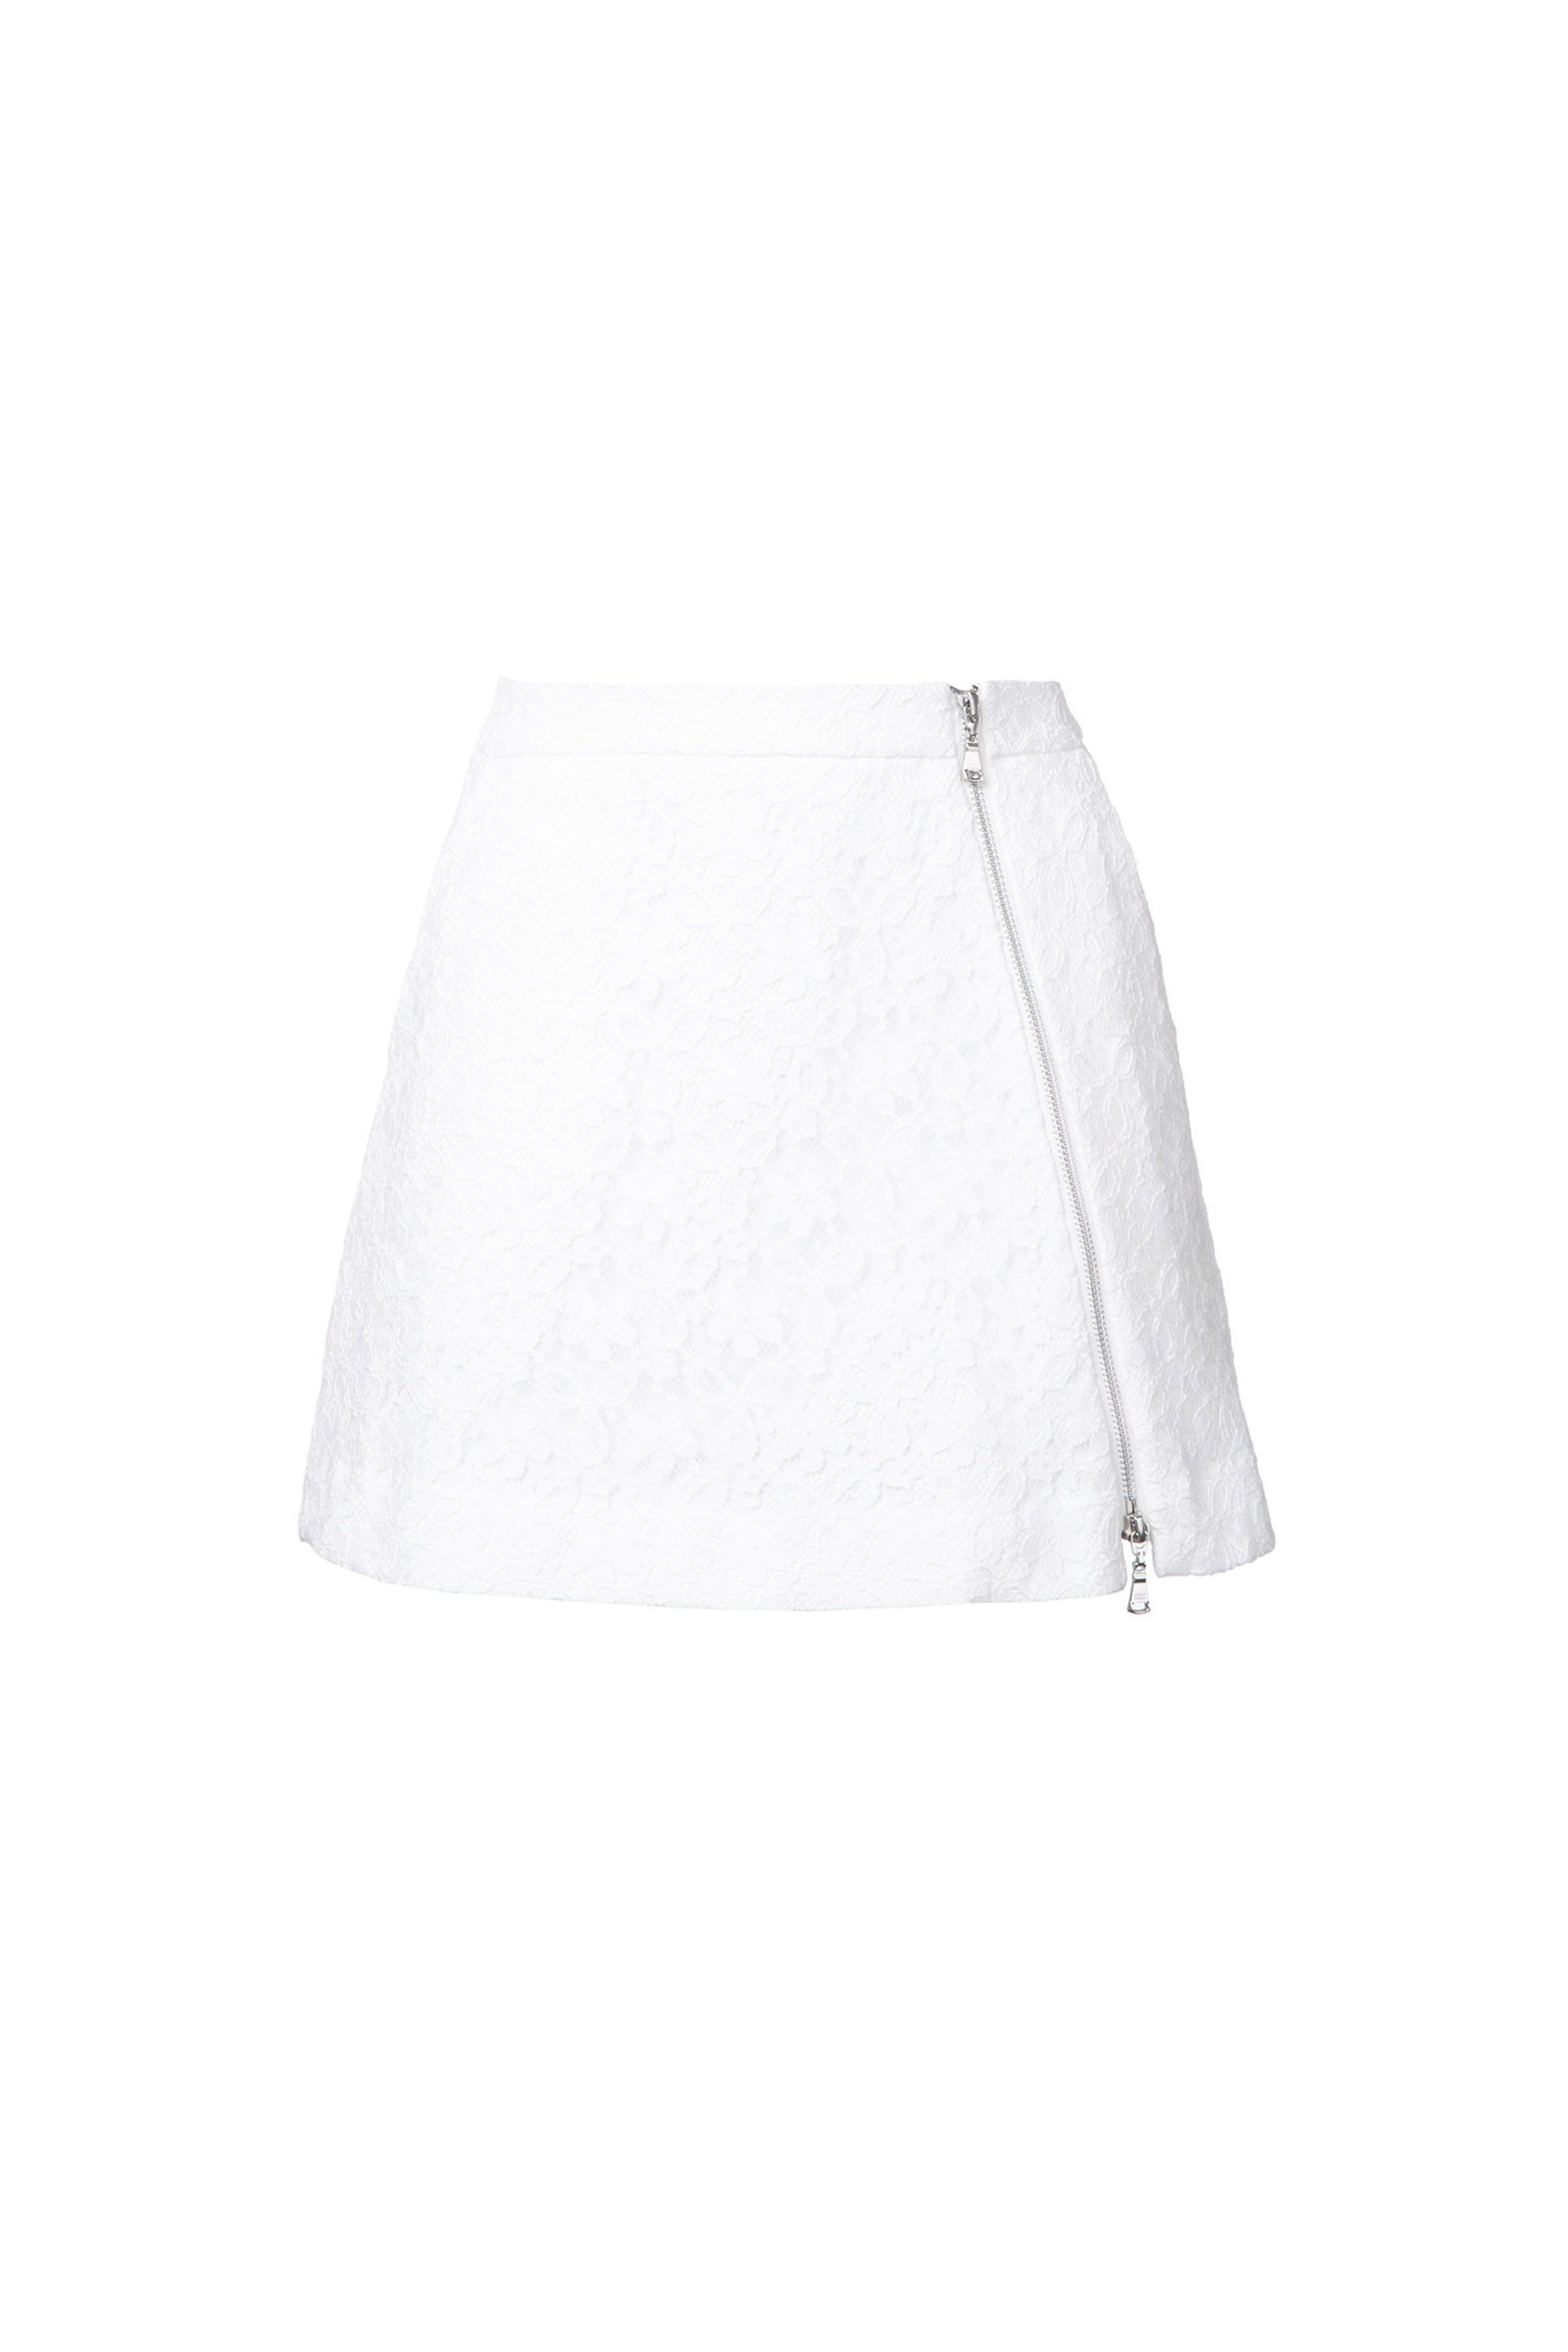 0935b7a04ce7 19 Cute White Skirts for Spring and Summer 2017 - Best White Skirts for  Every Budget